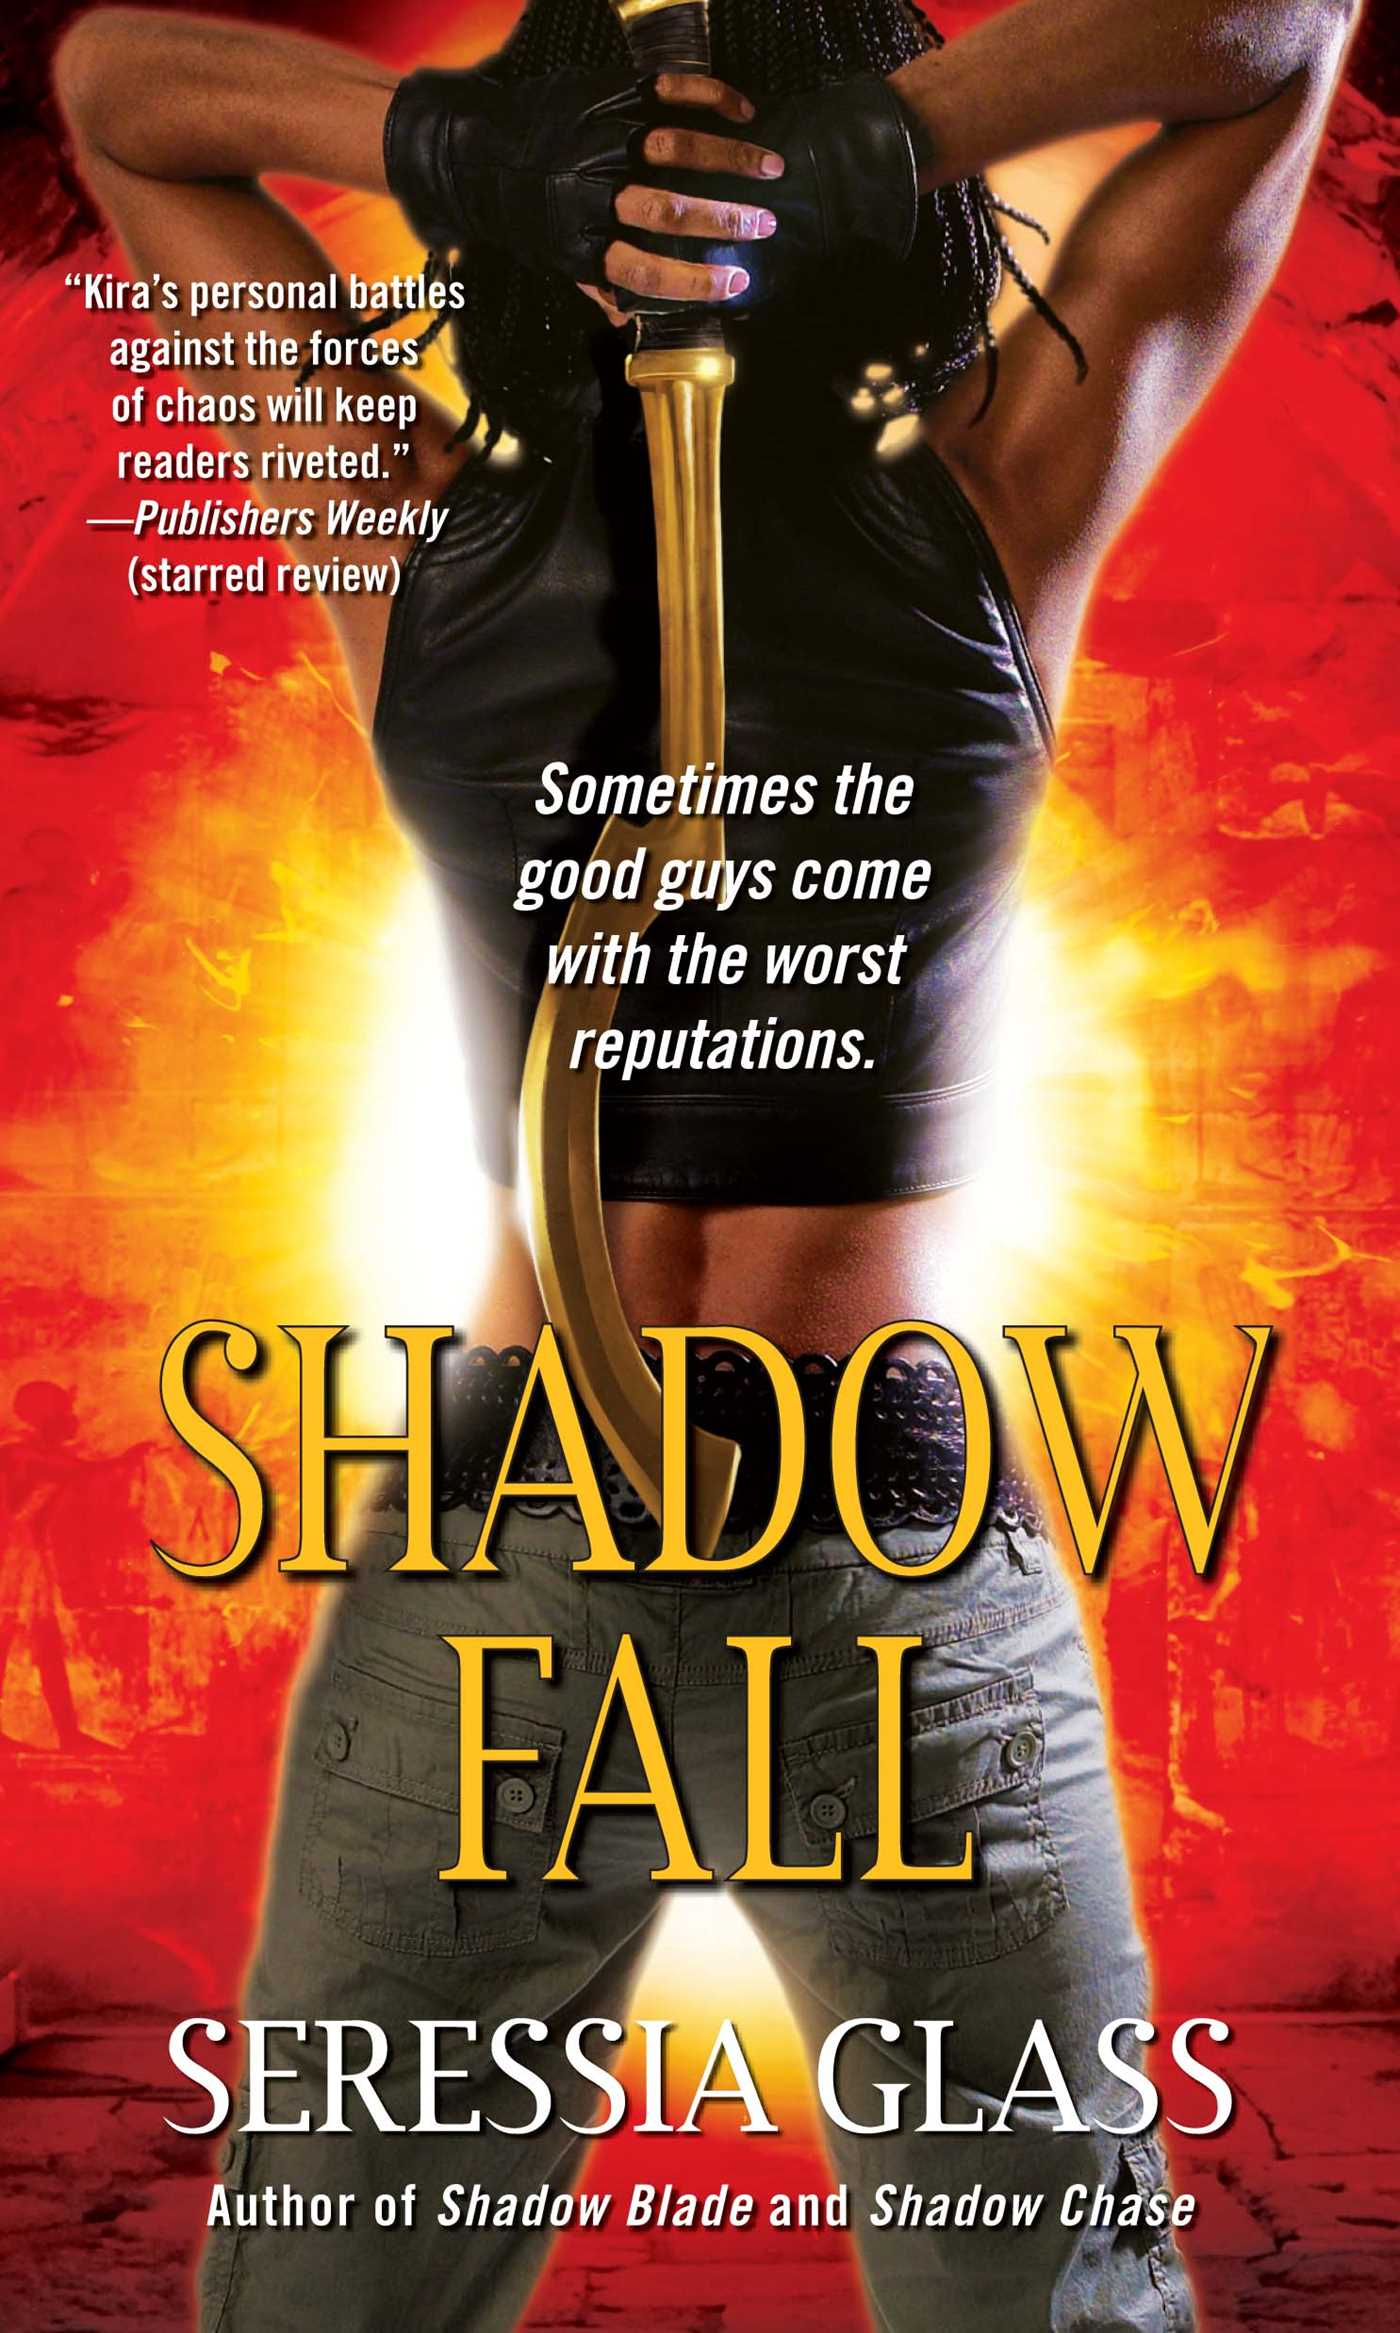 Shadow fall 9781439177068 hr